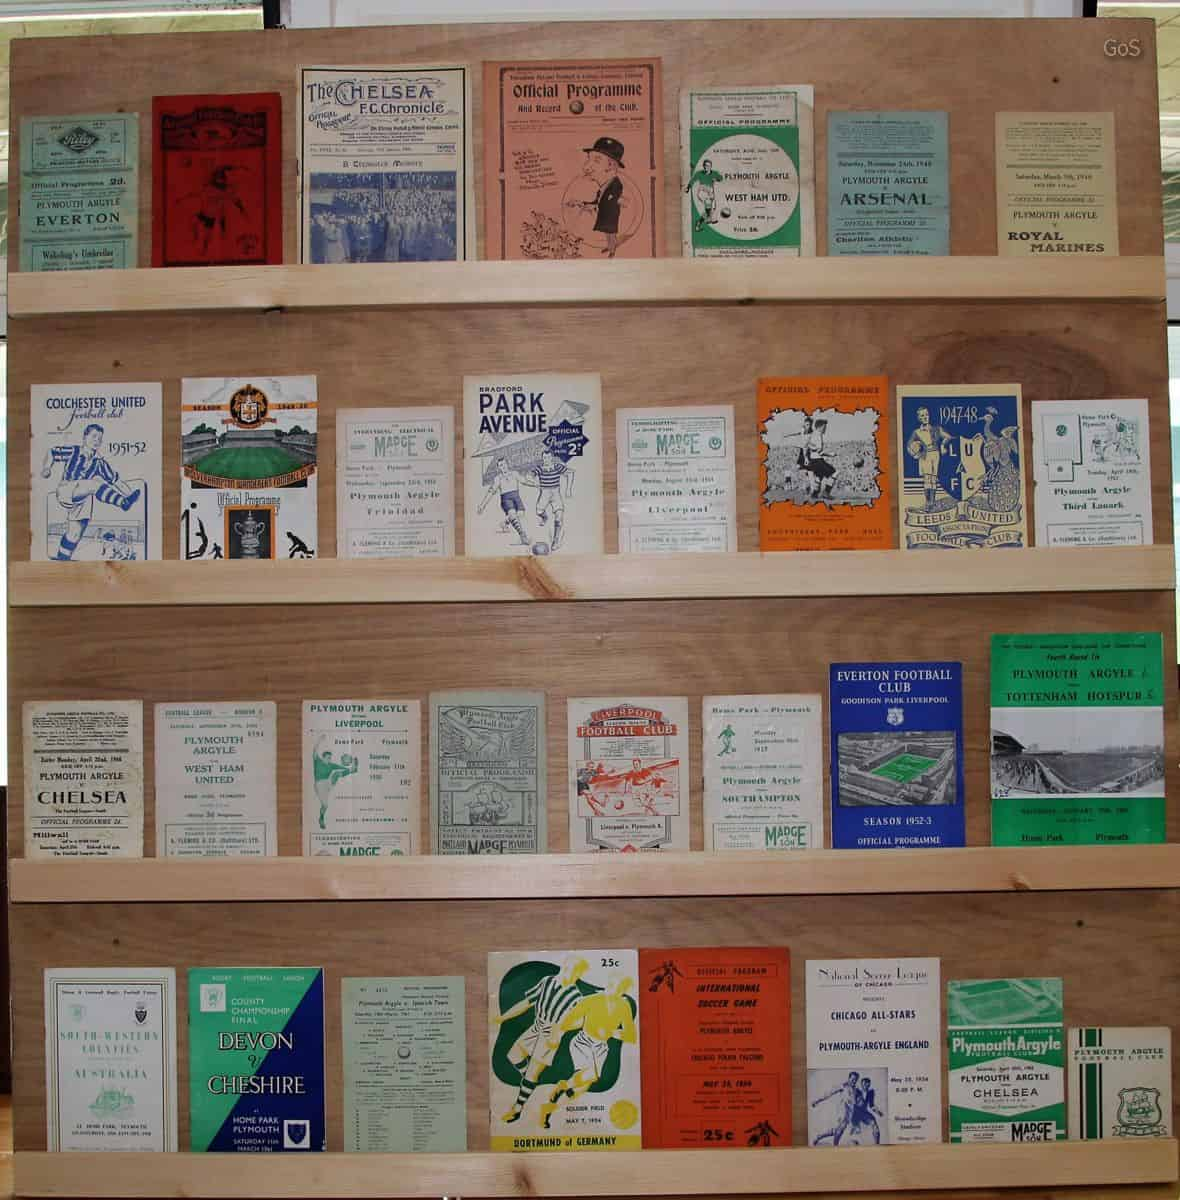 A selection of programmes on display